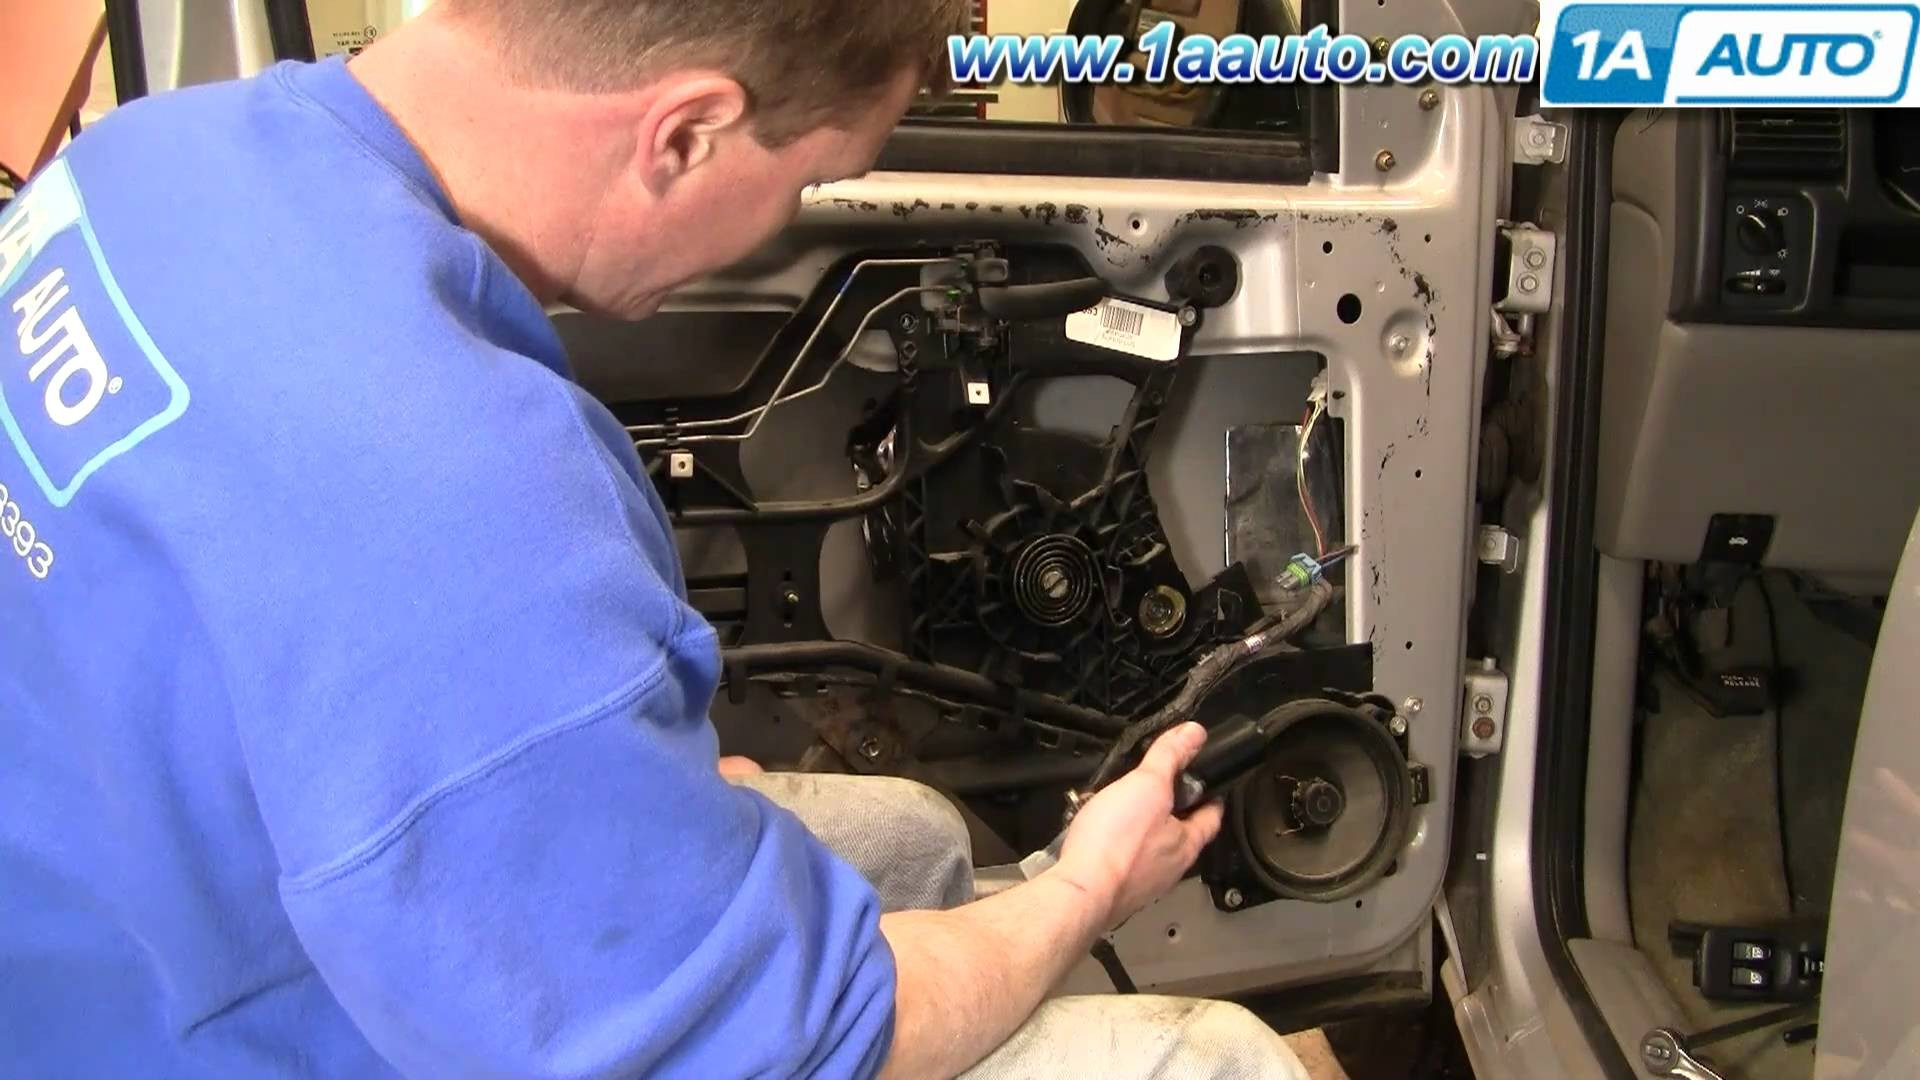 2004 Chevy Venture Engine Diagram How to Install Replace Power Window Motor Chevy Venture Pontiac Of 2004 Chevy Venture Engine Diagram